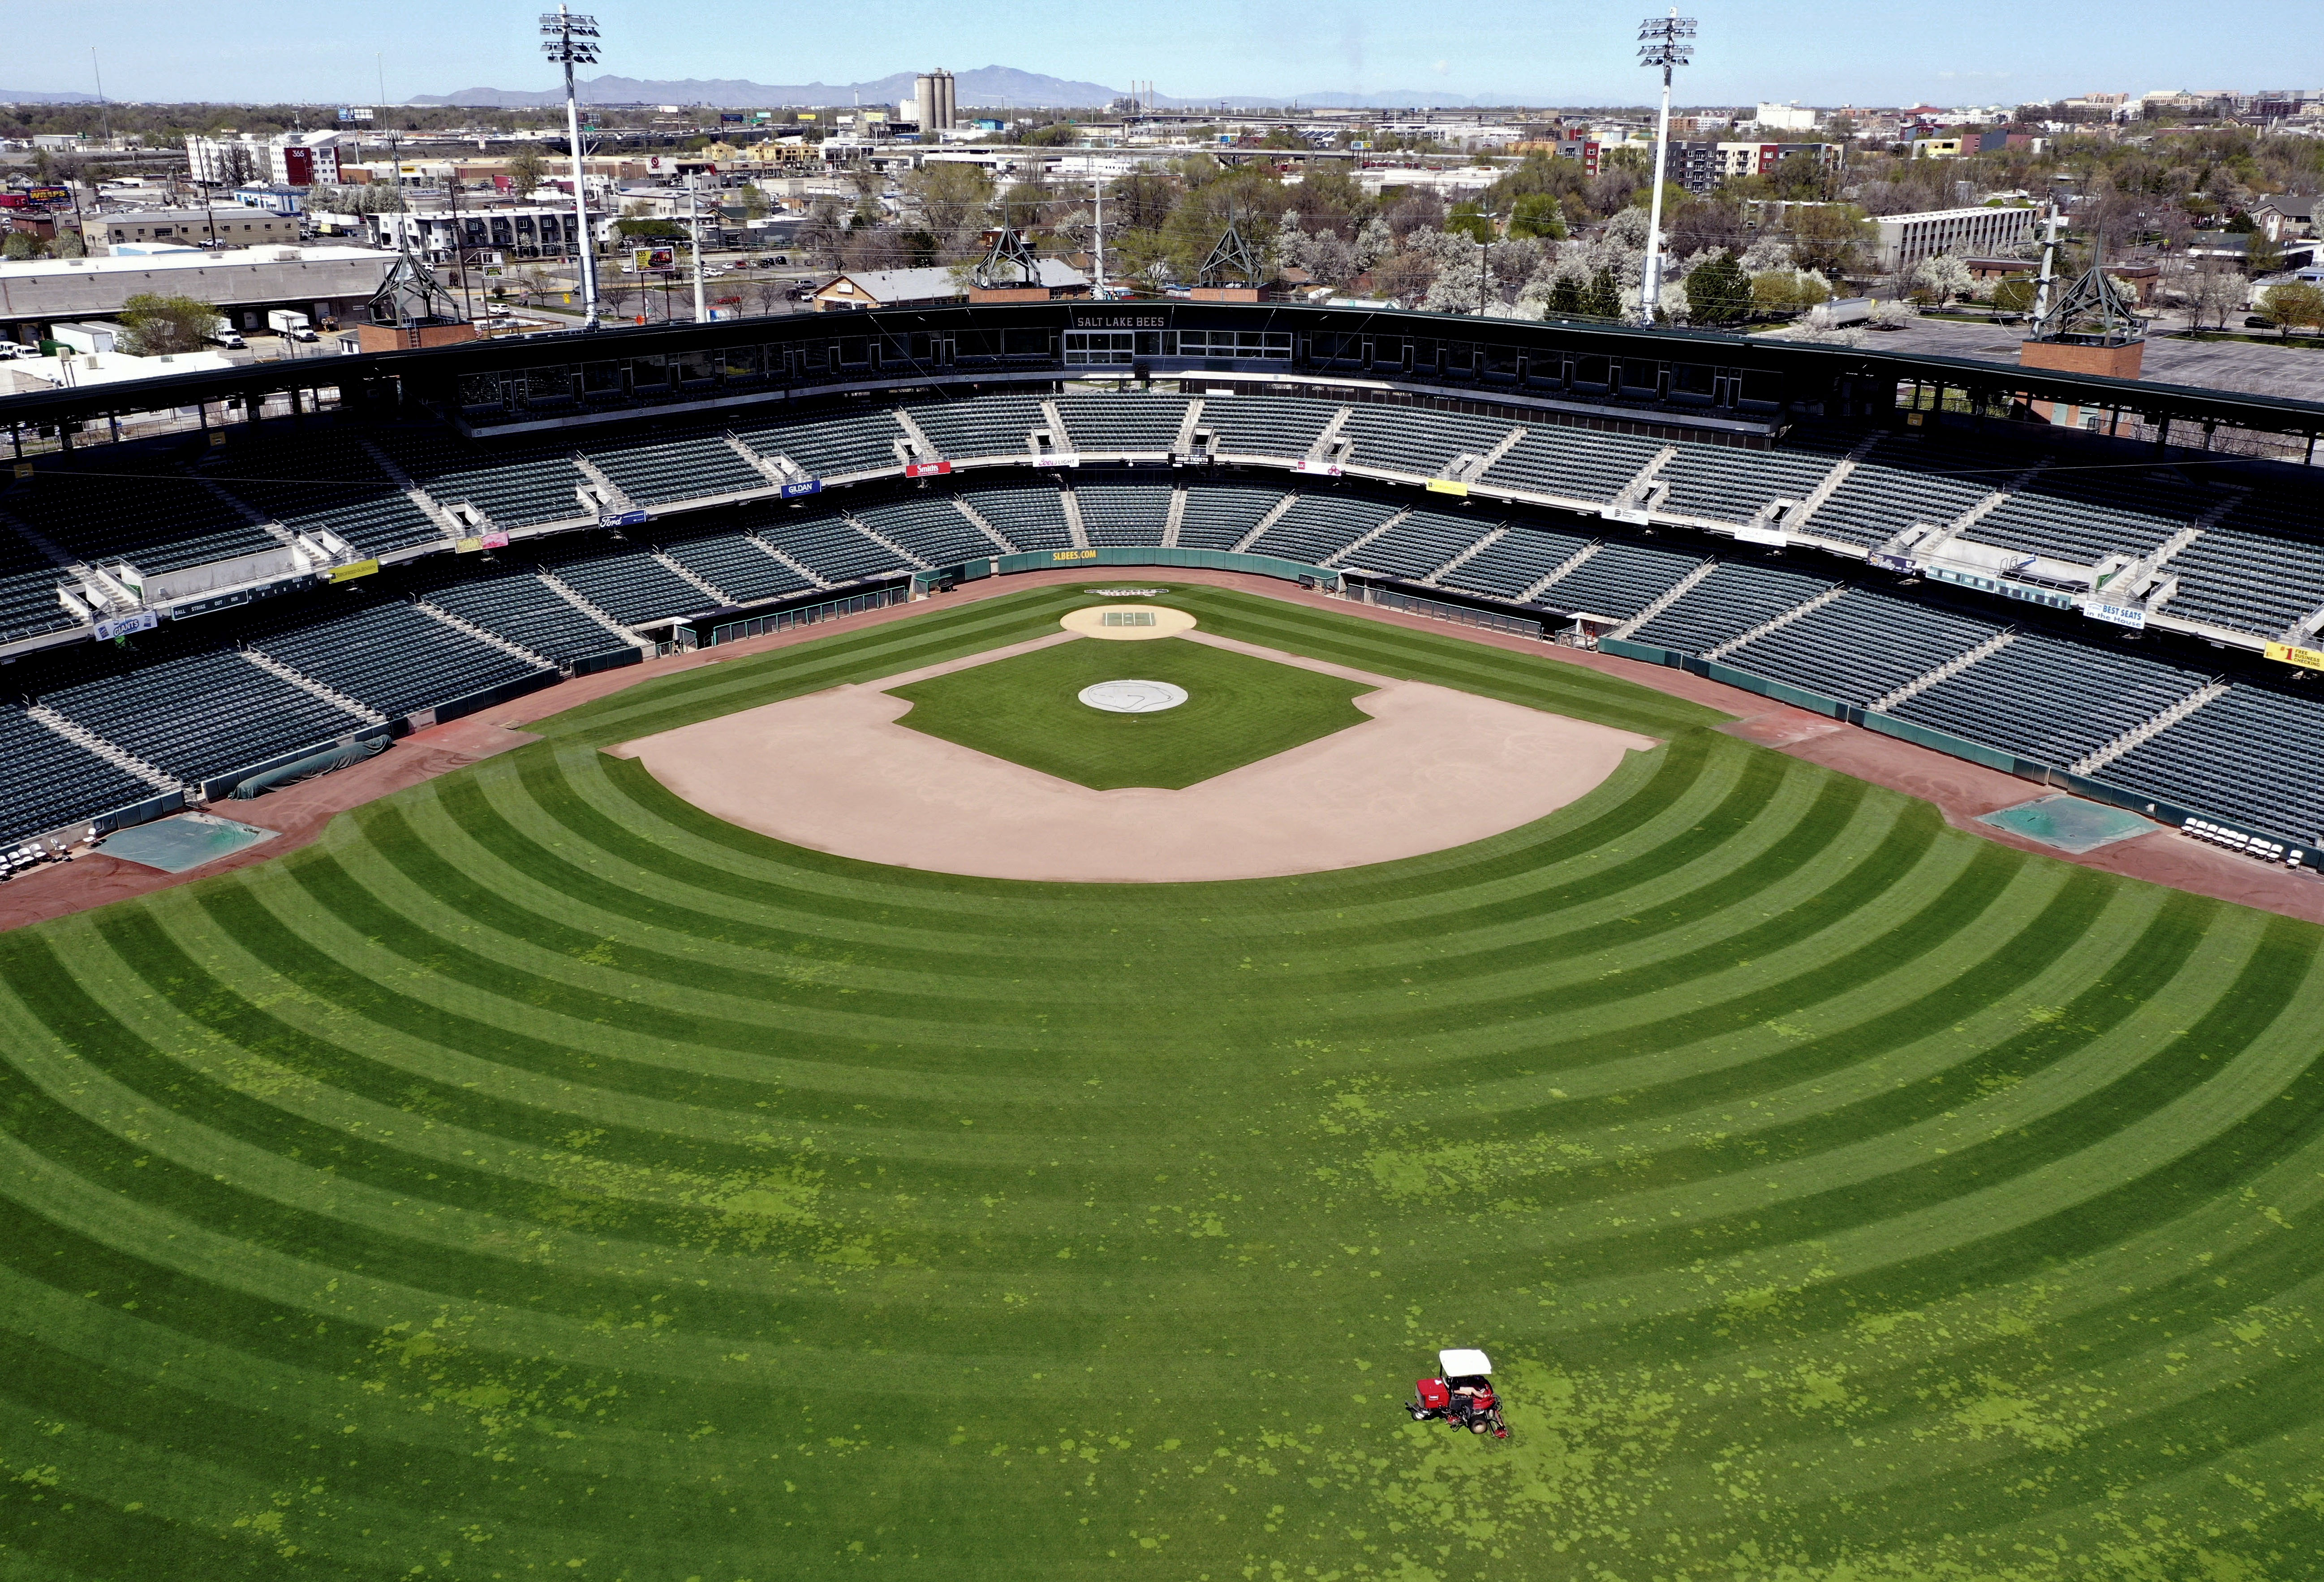 Brian Soukup, director of field operations, mows the field at Smith's Ballpark in Salt Lake City on Wednesday, April 8, 2020. Soukup is intentionally keeping the discolored grass in an effort to save money until the season is a go.